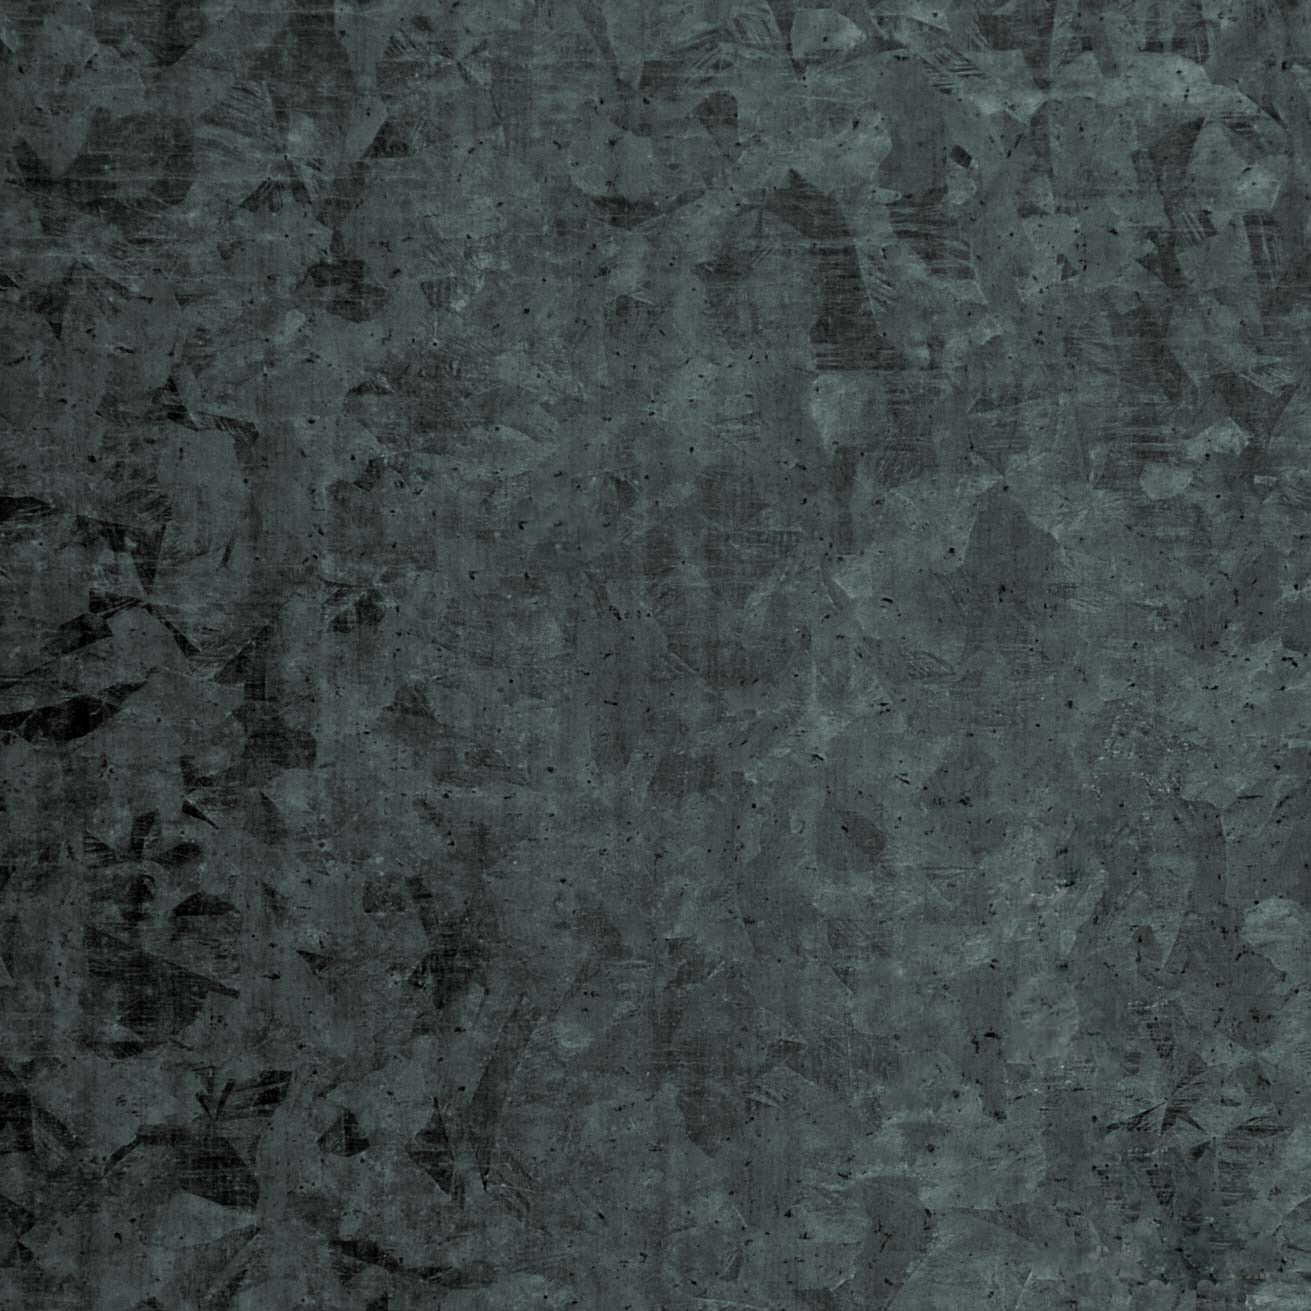 texture zinc, zinc, metal, zinc texture background, metal